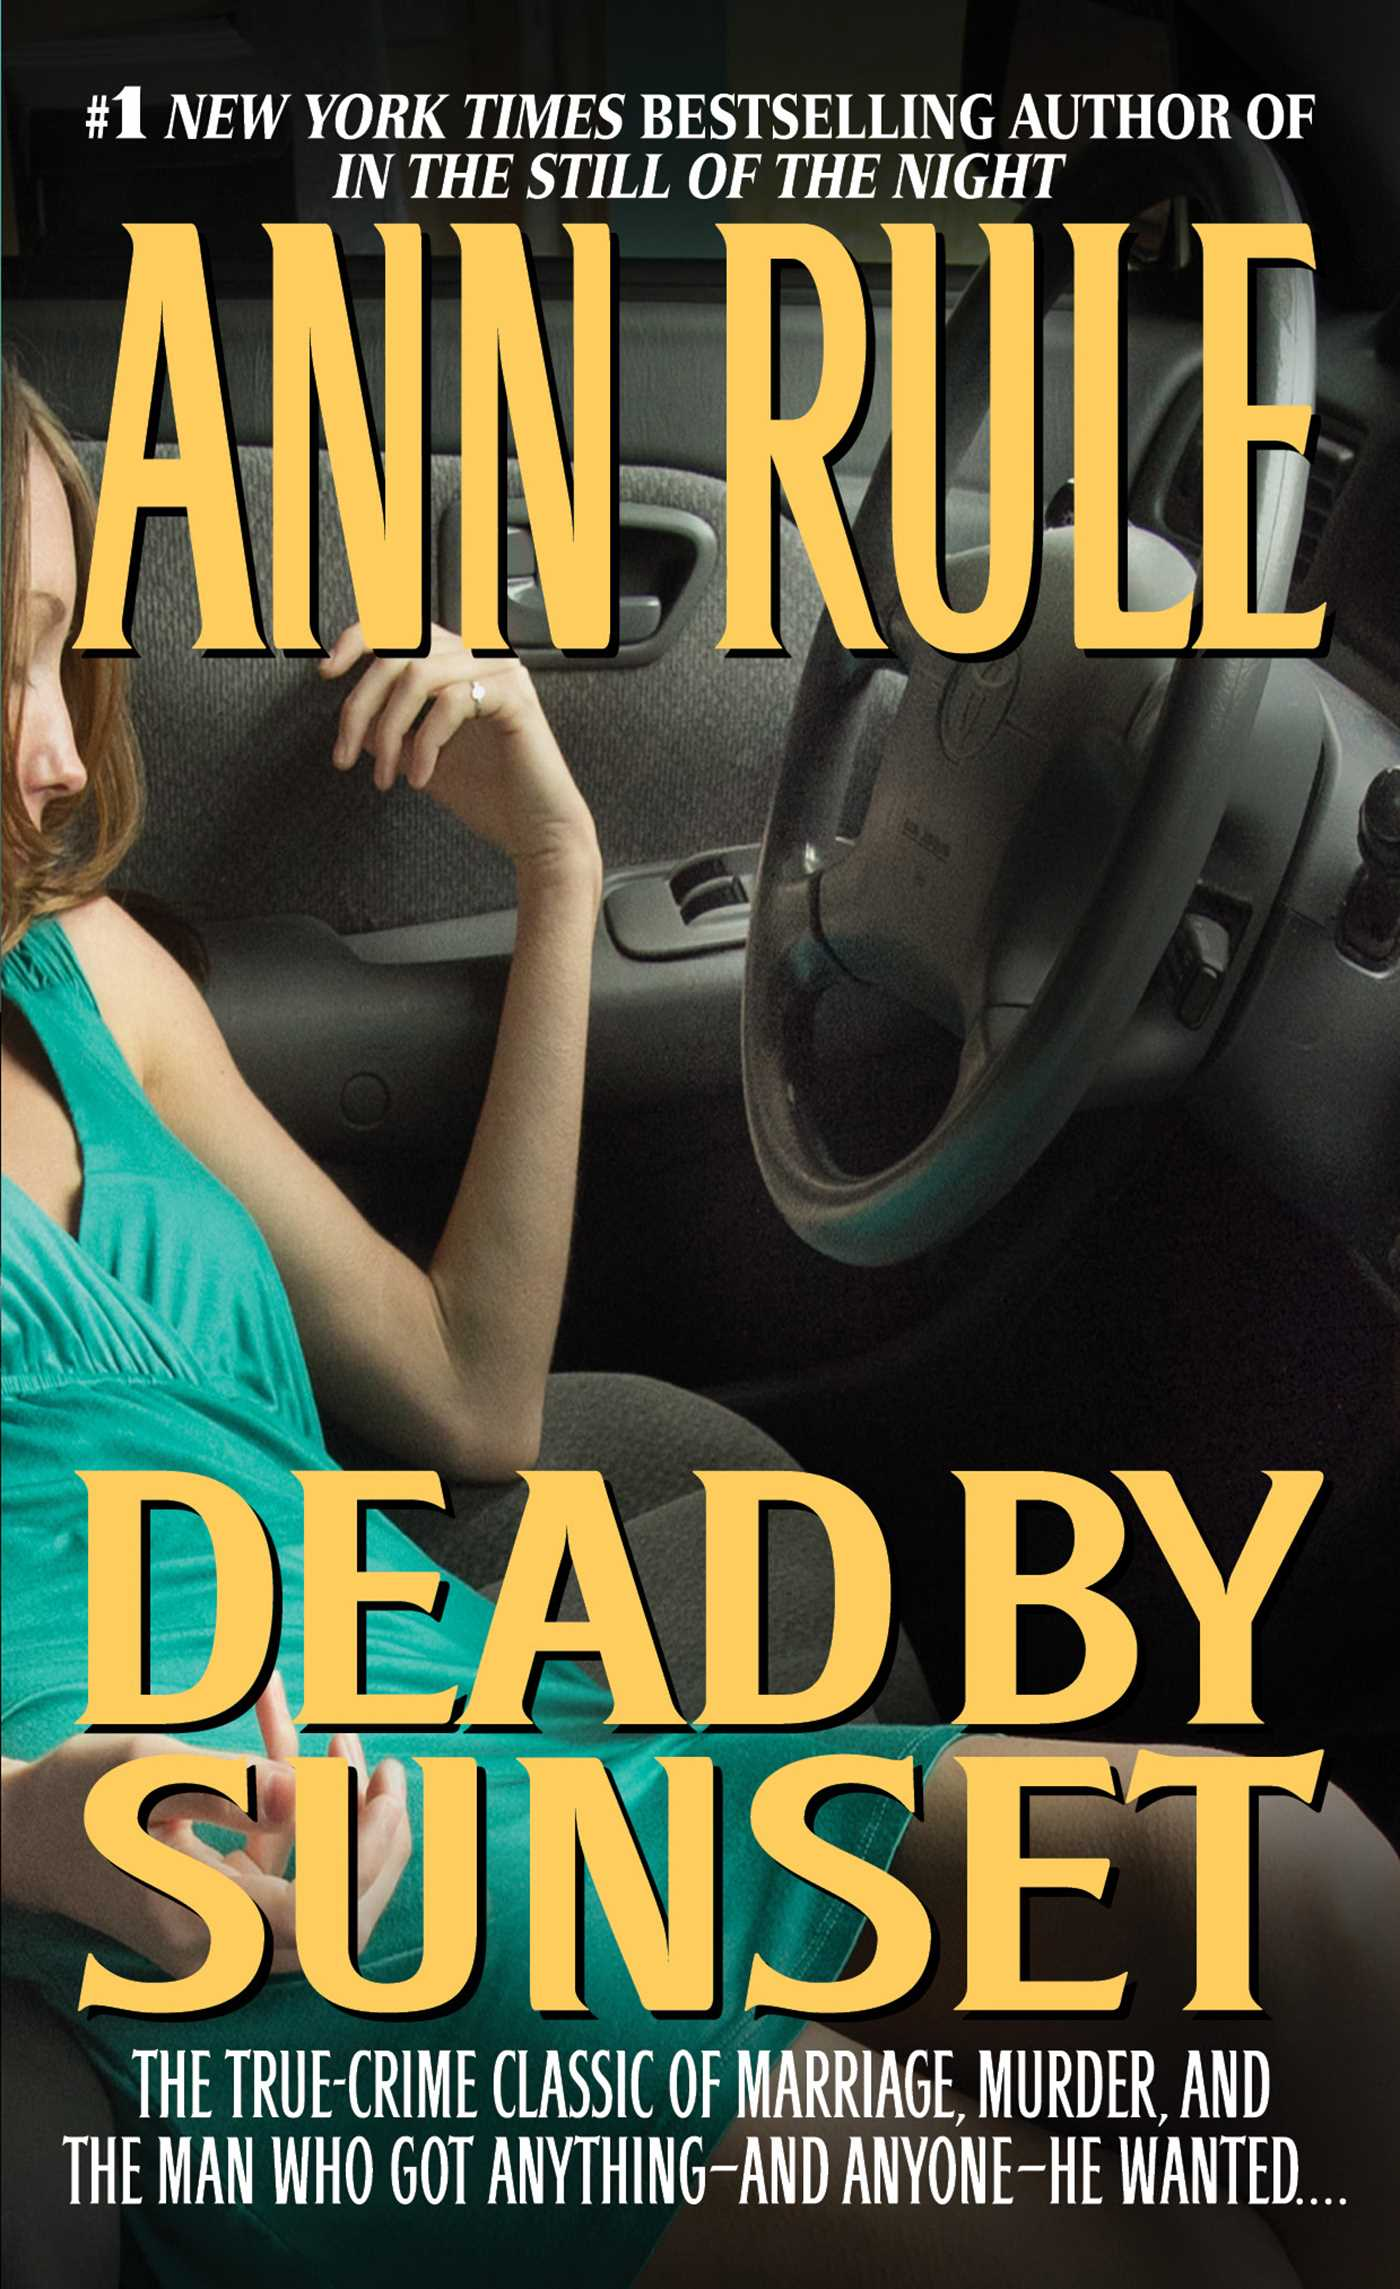 Dead by sunset 9780671001131 hr